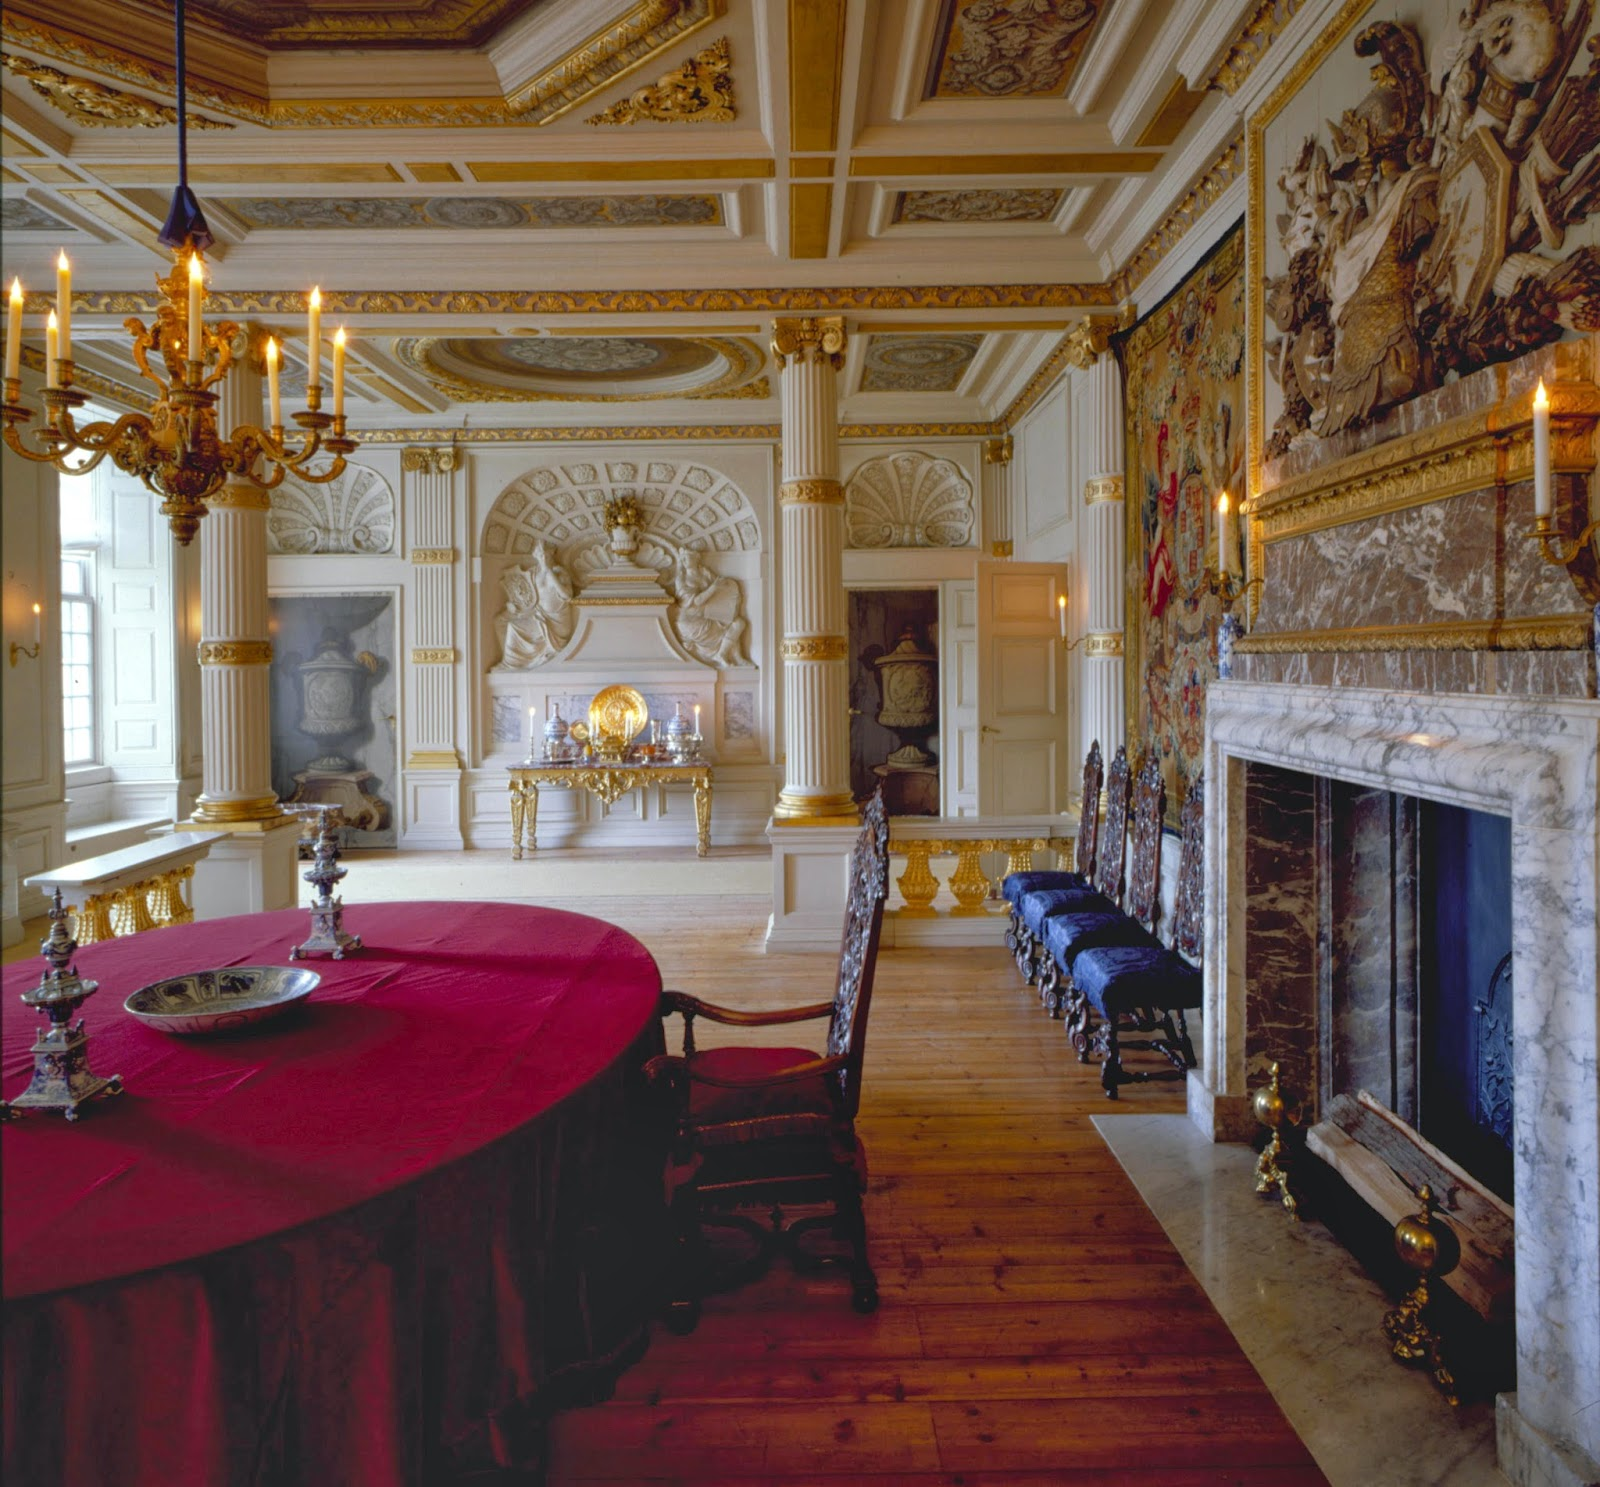 Loveisspeed Het Loo Palace Is A Palace In